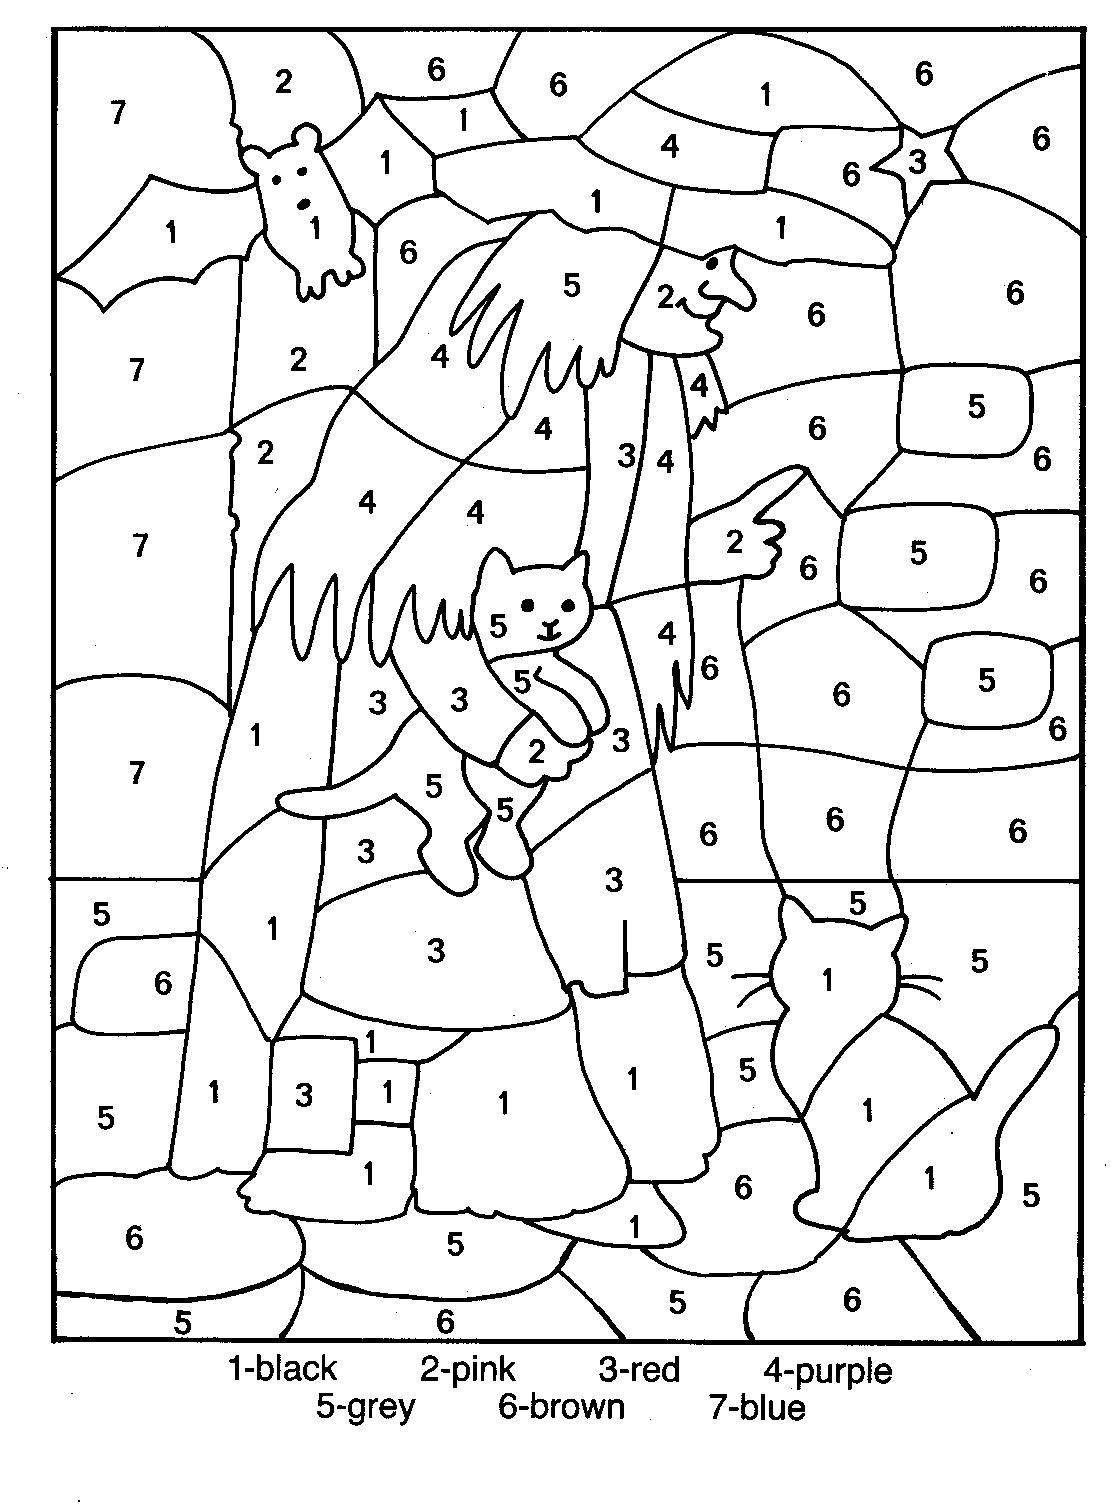 Coloring sheet halloween multiplication - Color By Number Coloring Pages For Kids 4